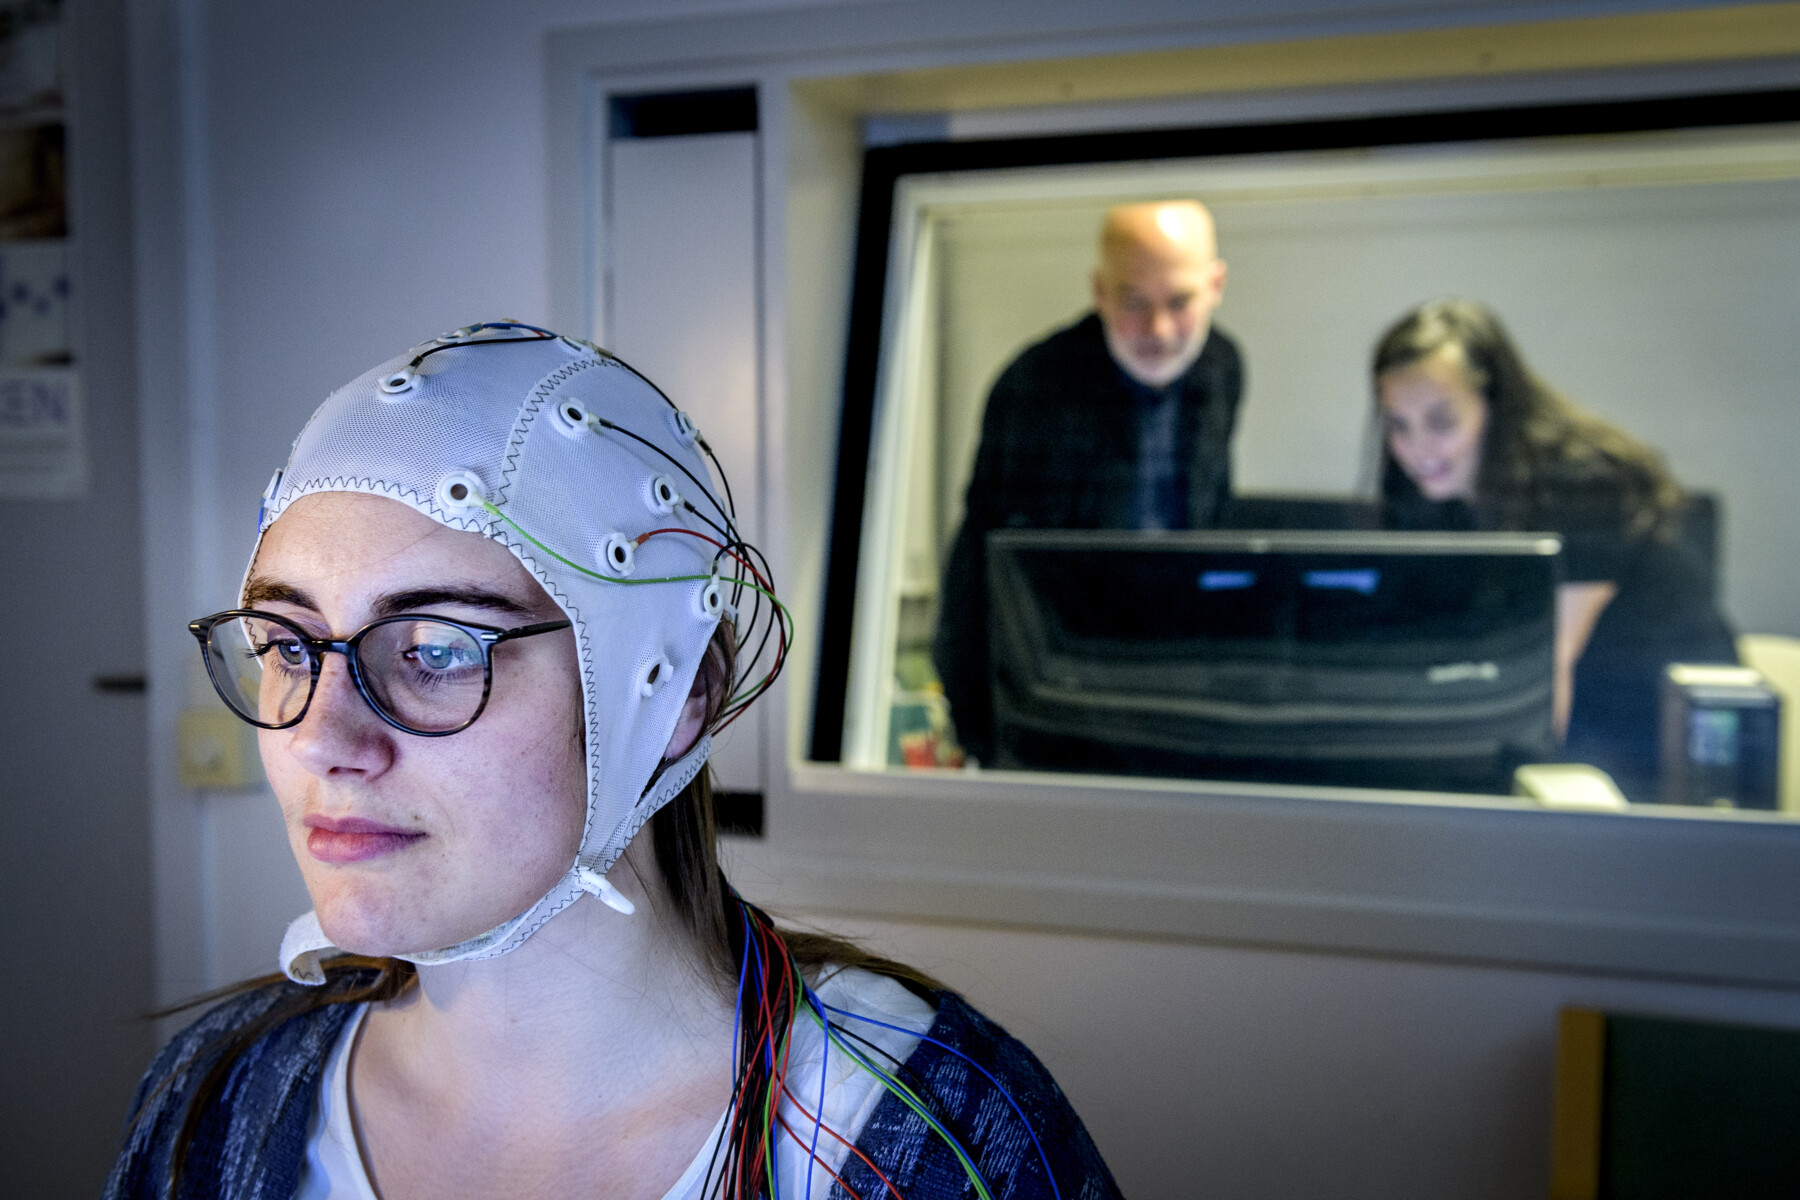 A person taking part in a brain activity study. The person wears a cap connected by wires to a computer.